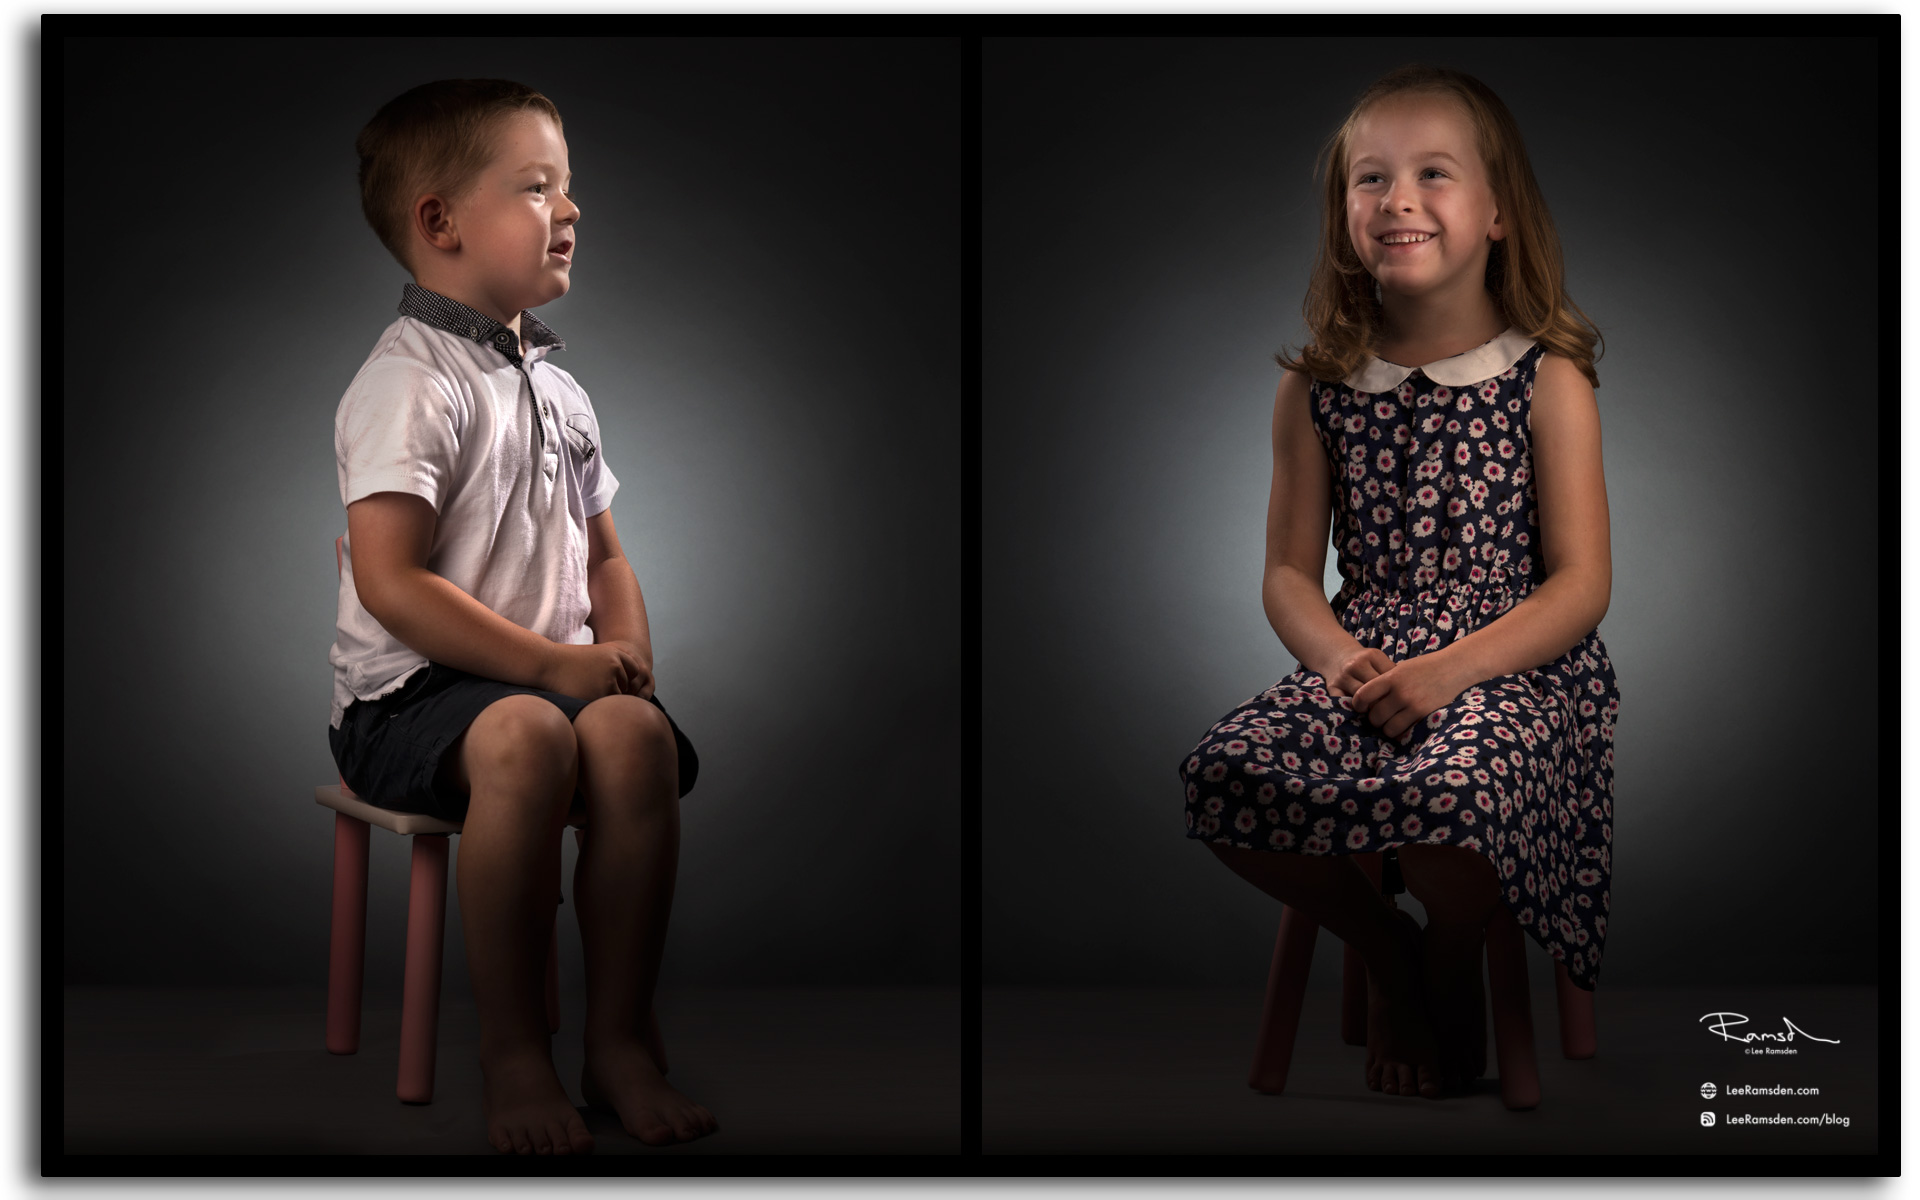 Brother and sister image moody lighting professional photographer Manchester